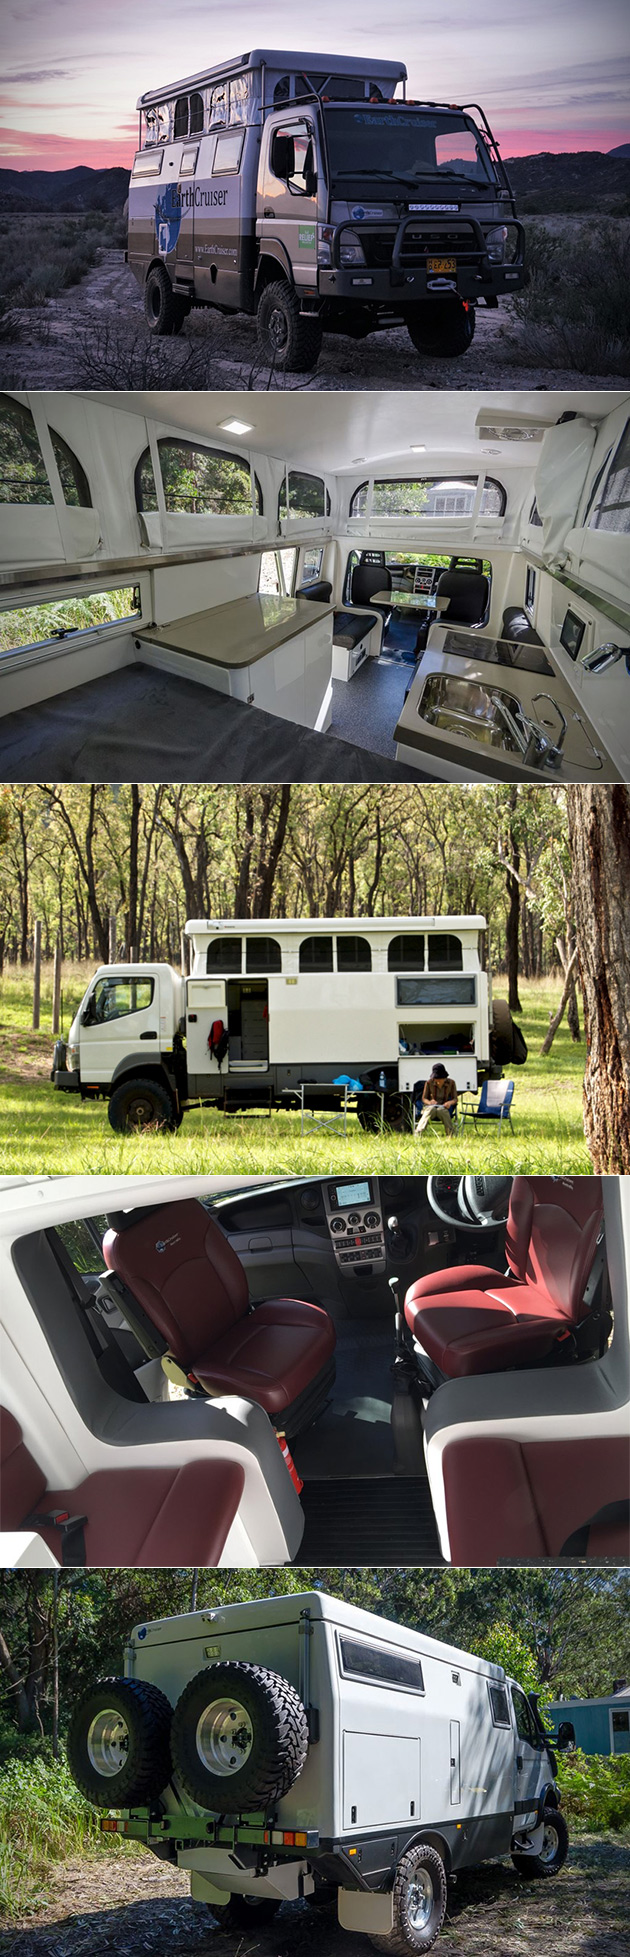 EarthCruiser EXP is the Swiss Army Knife of Expedition Vehicles, Has Solar Power and Pop-Up Roof